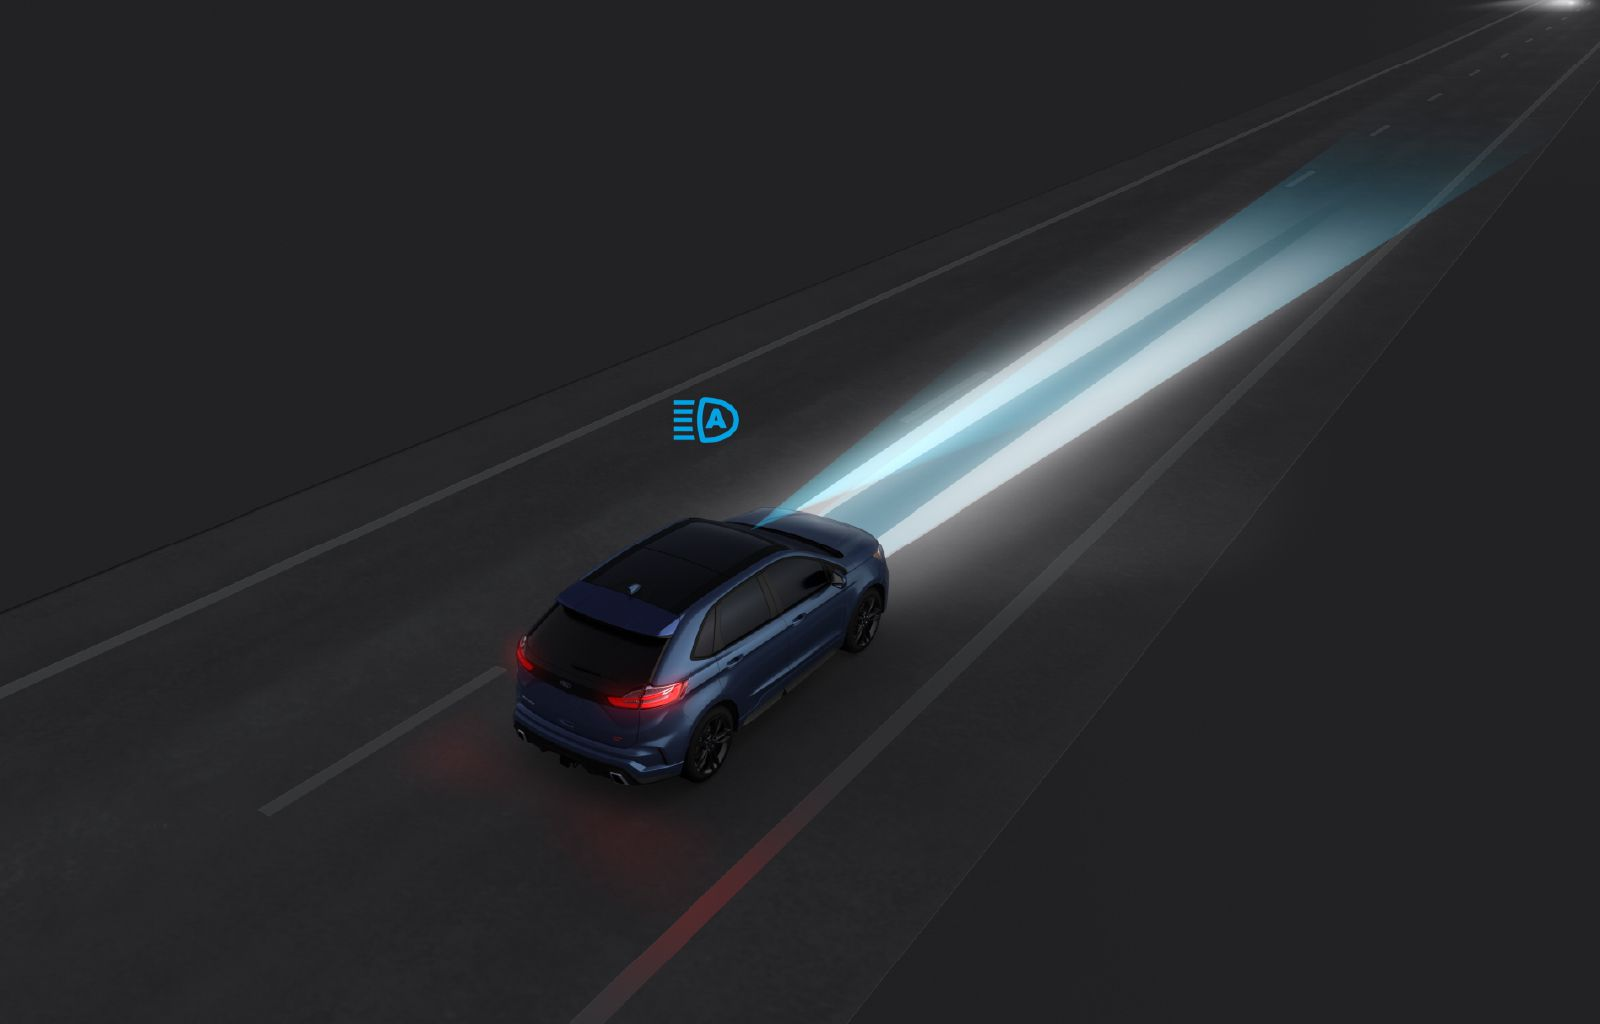 Giving you greater visibility while ensuring safety for other drivers as well.